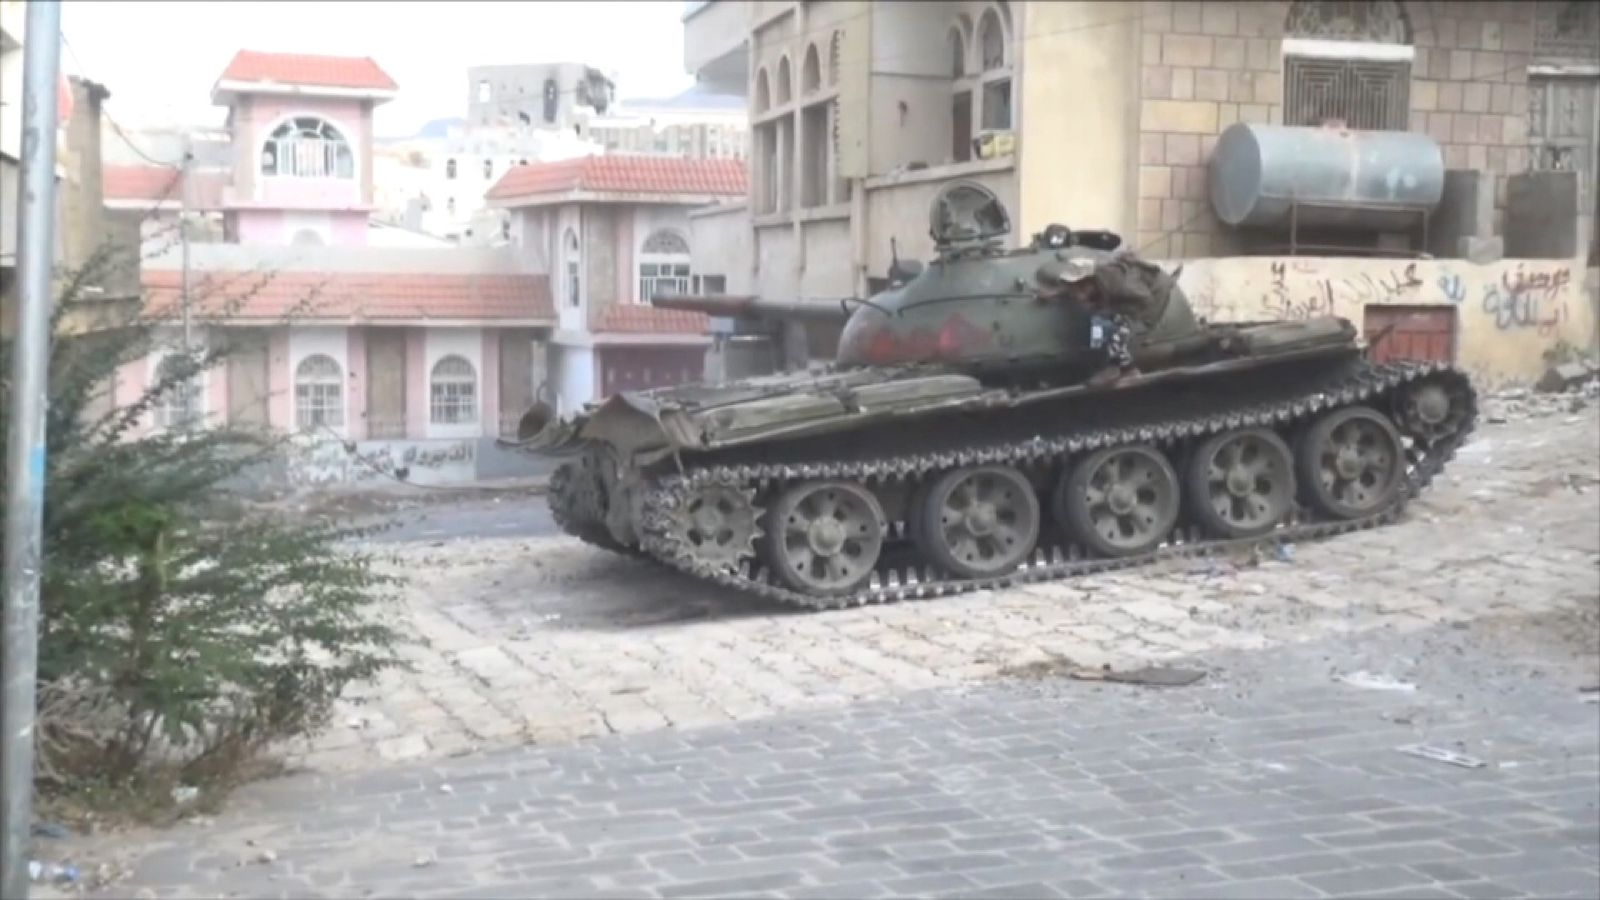 Tank in city of Taiz in Yemen